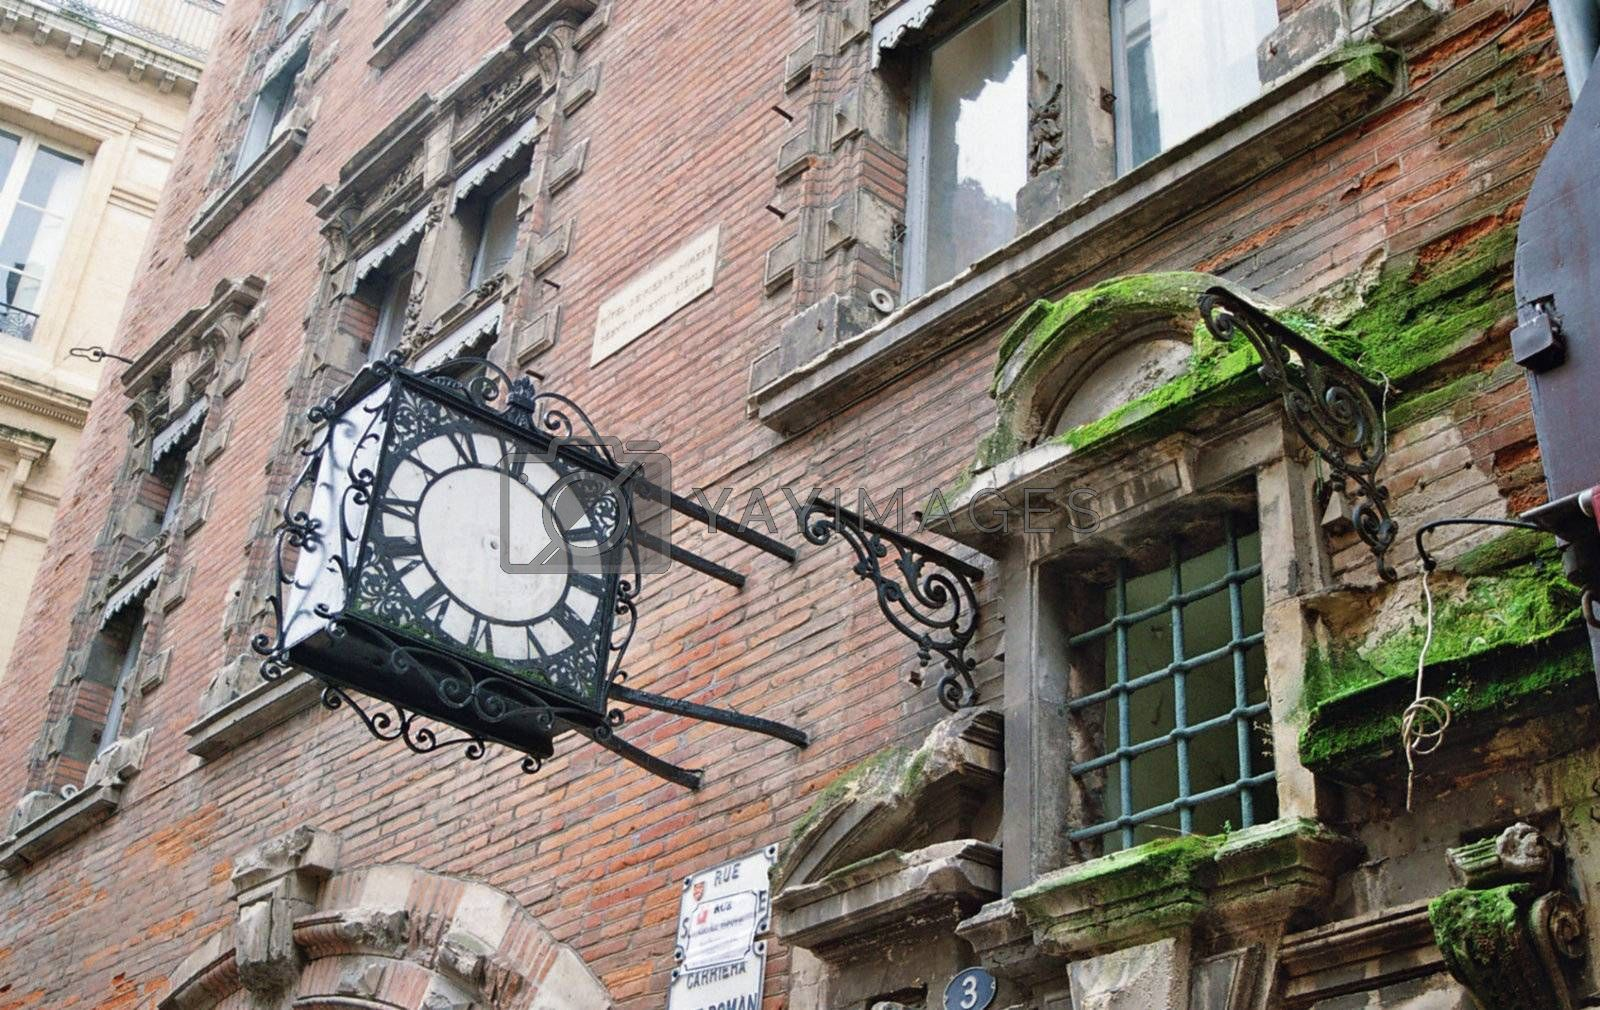 old, pointerless clock and old window in toulouse